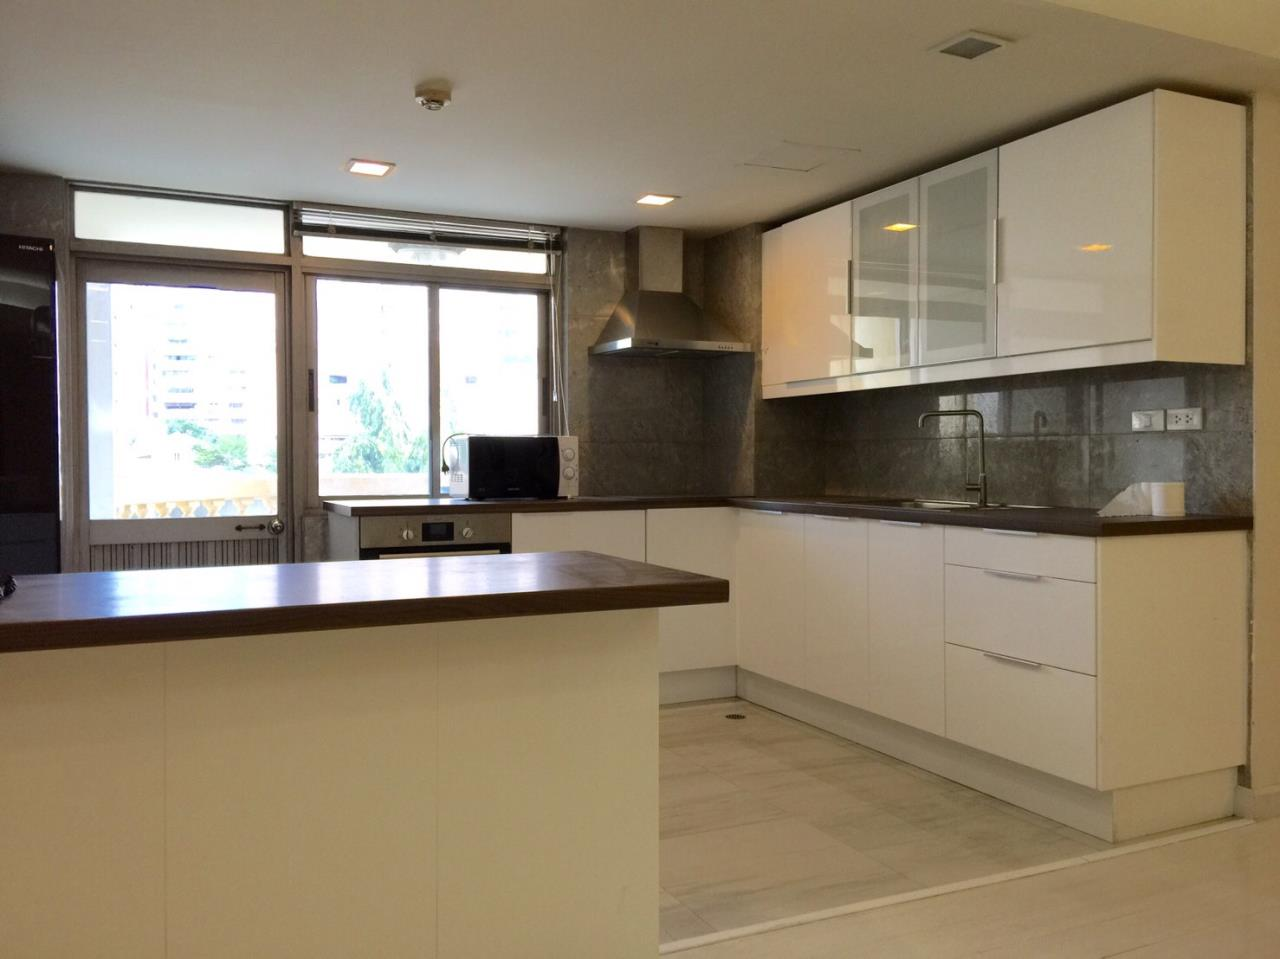 RE/MAX All Star Realty Agency's Royal Castle large 3-4 beds 202sqm for rent (BTS Phrom Phong) 7